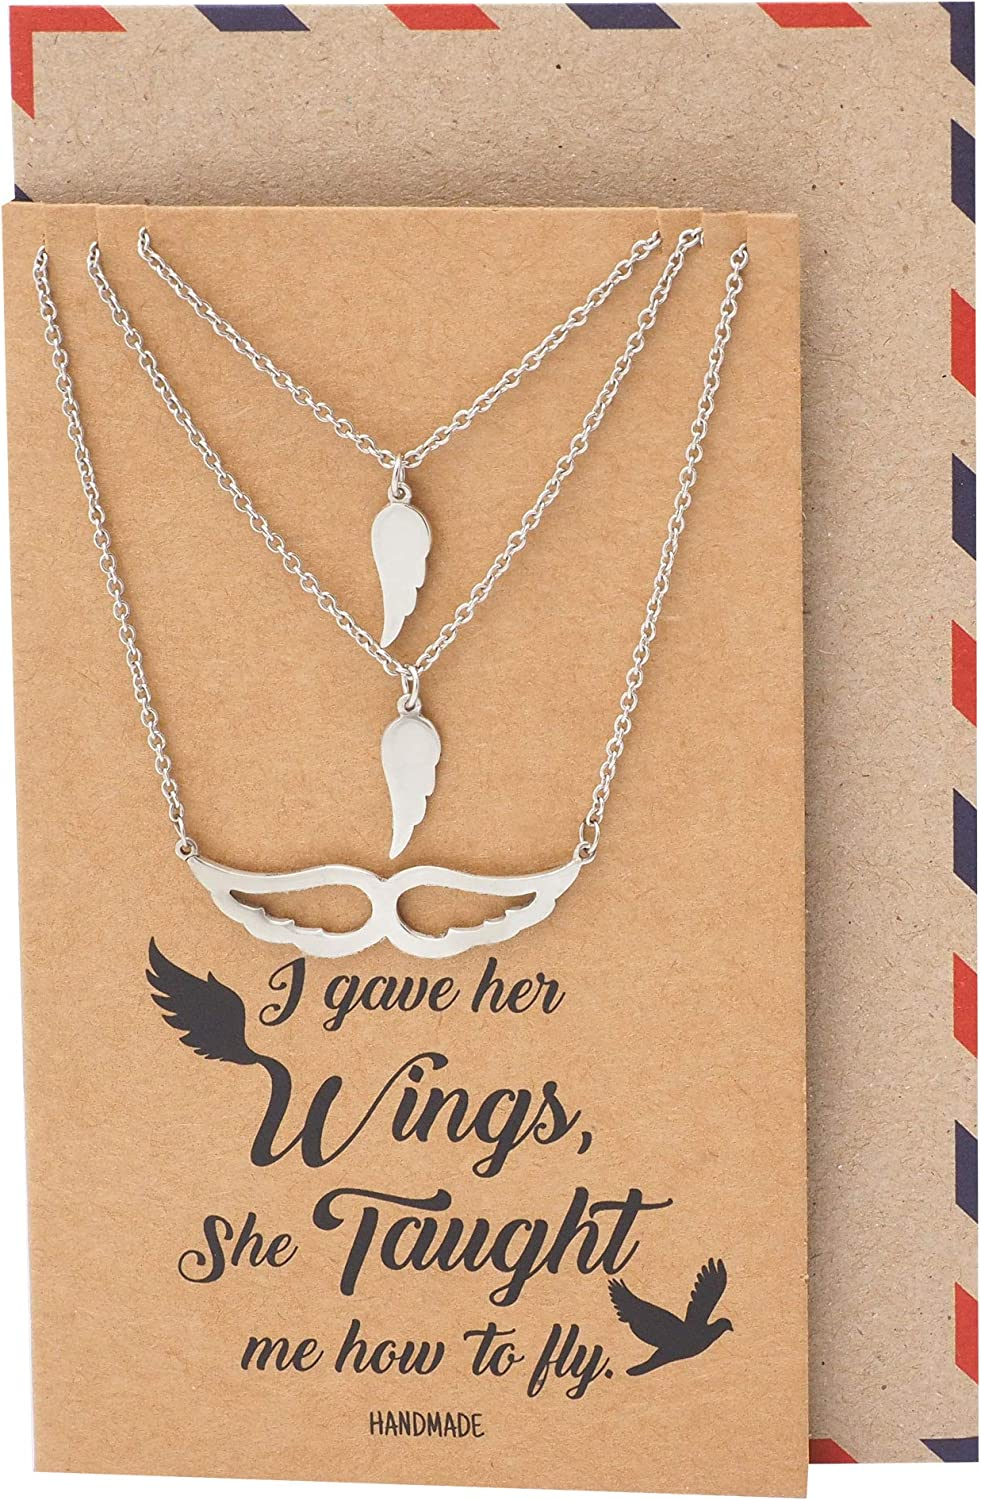 925 Sterling Silver Angel Wing Pendant Necklace with Motivational Quote Card